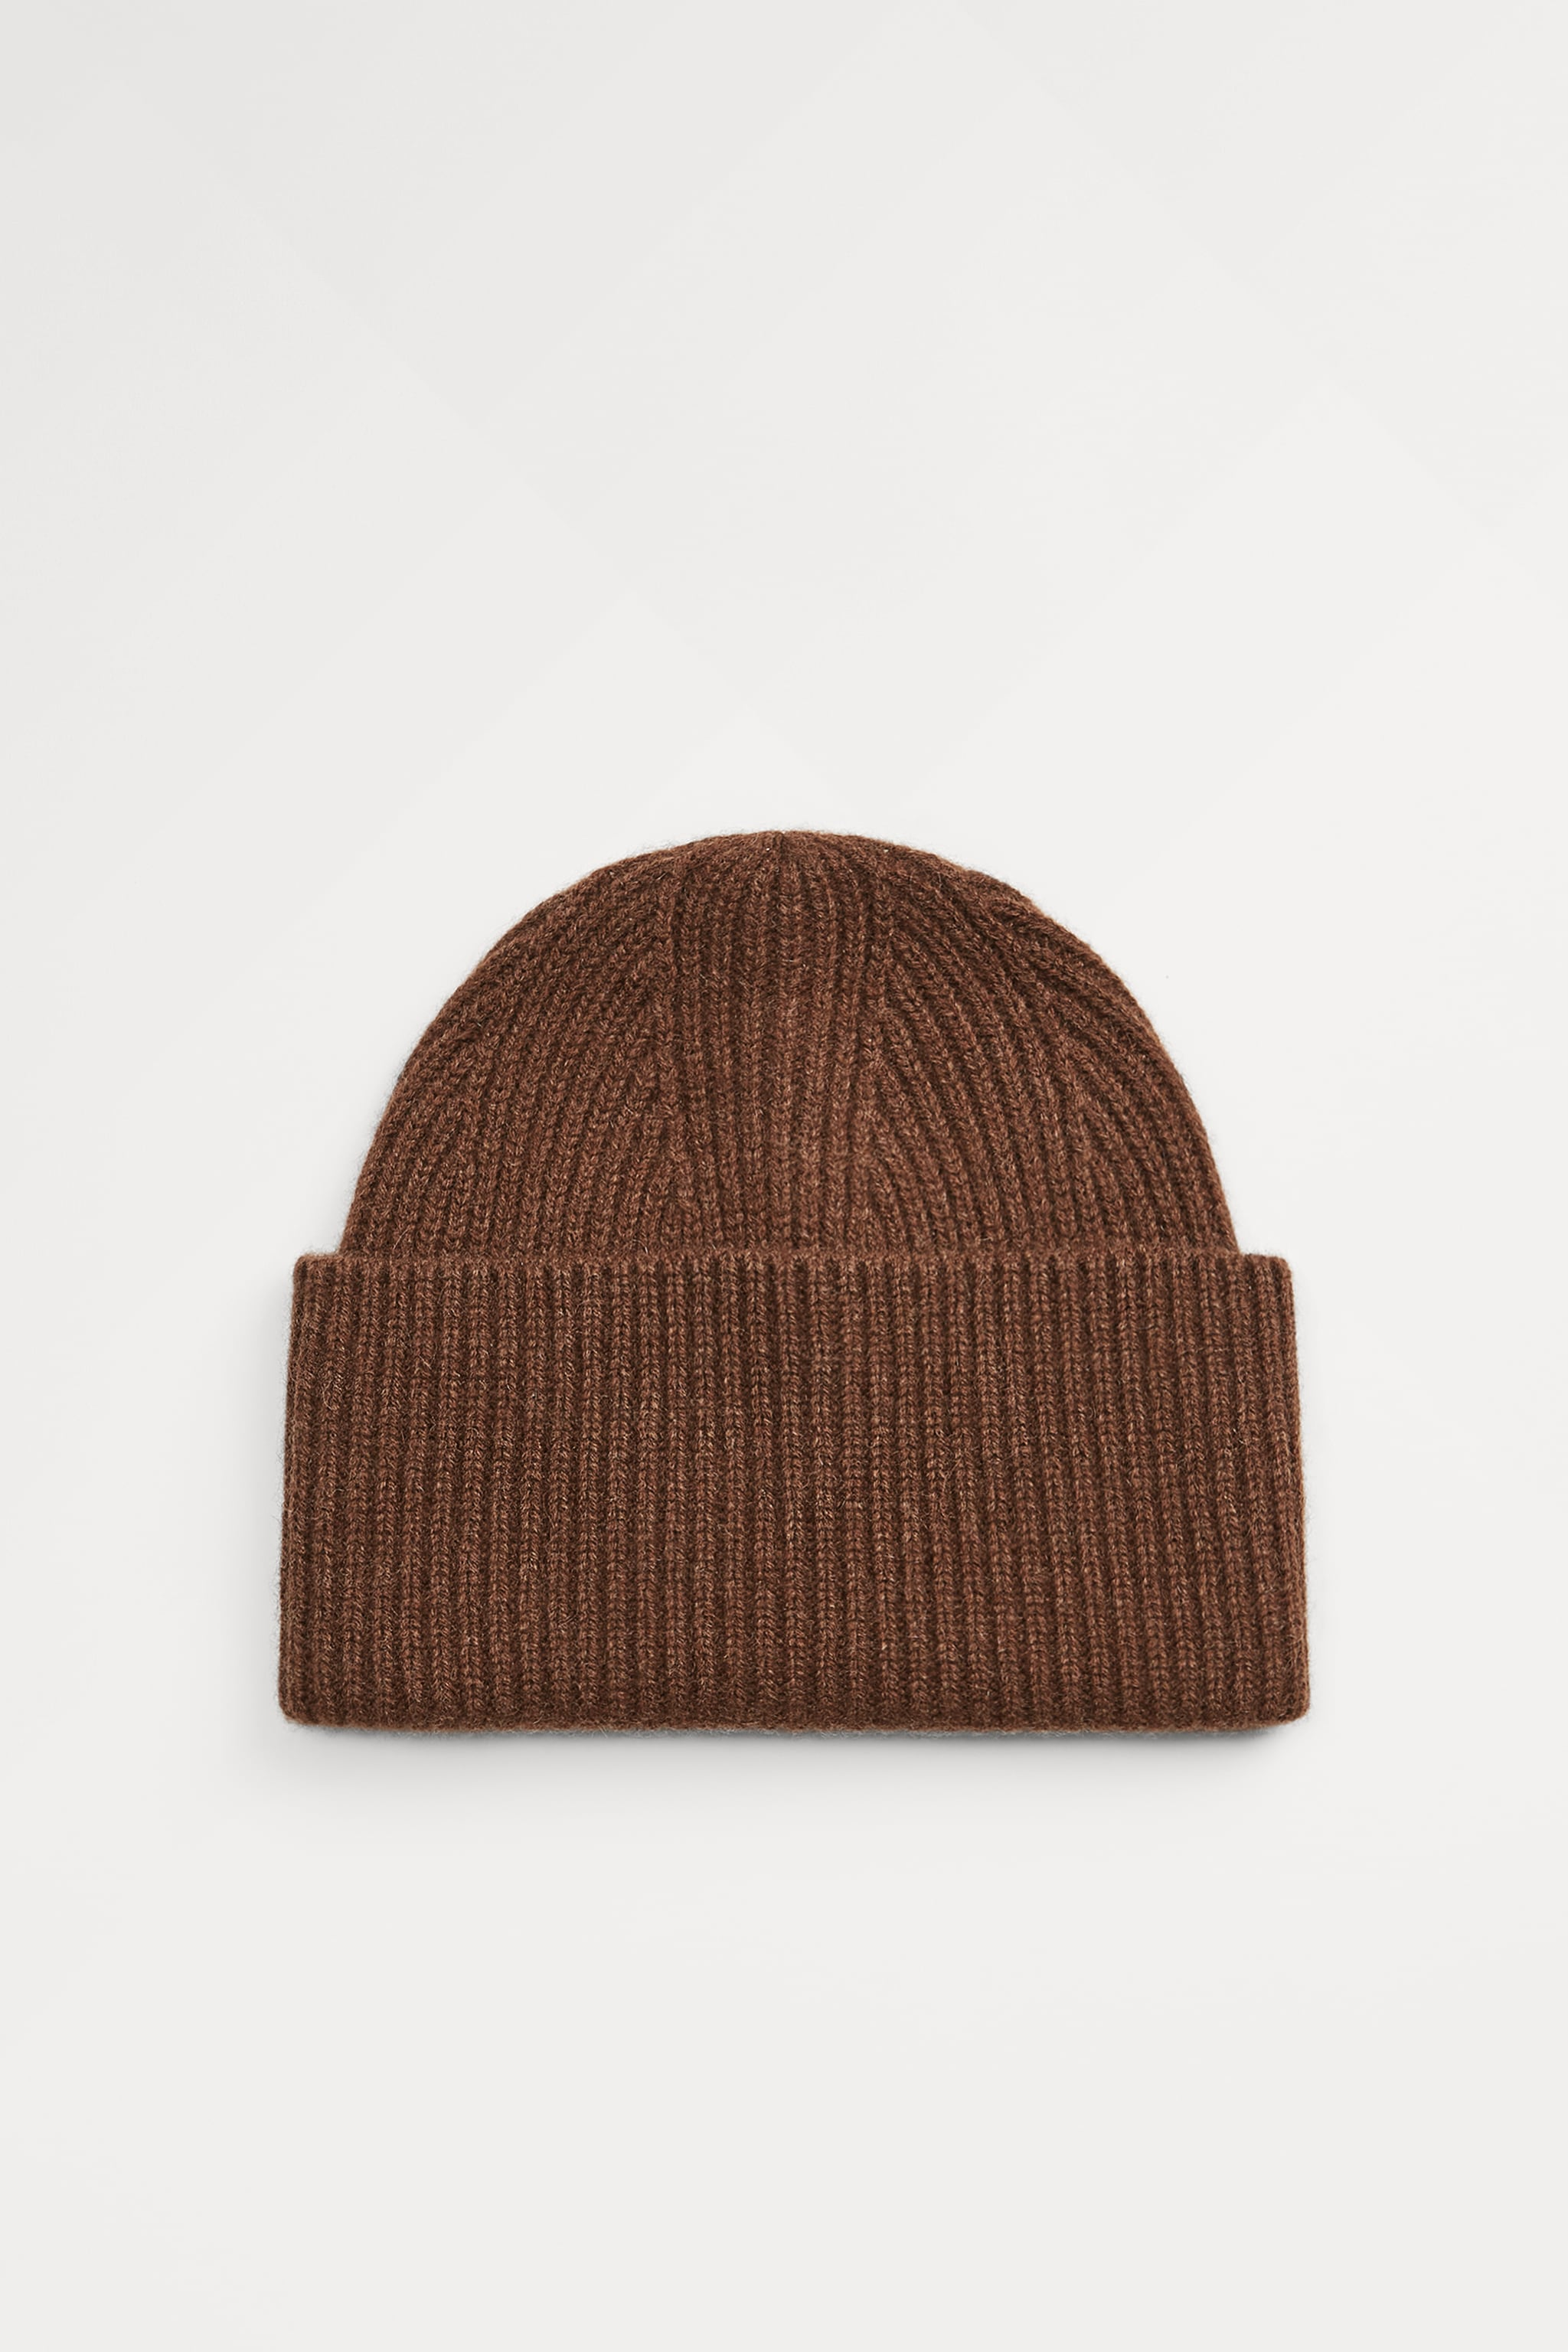 Zara RIBBED CASHMERE HAT